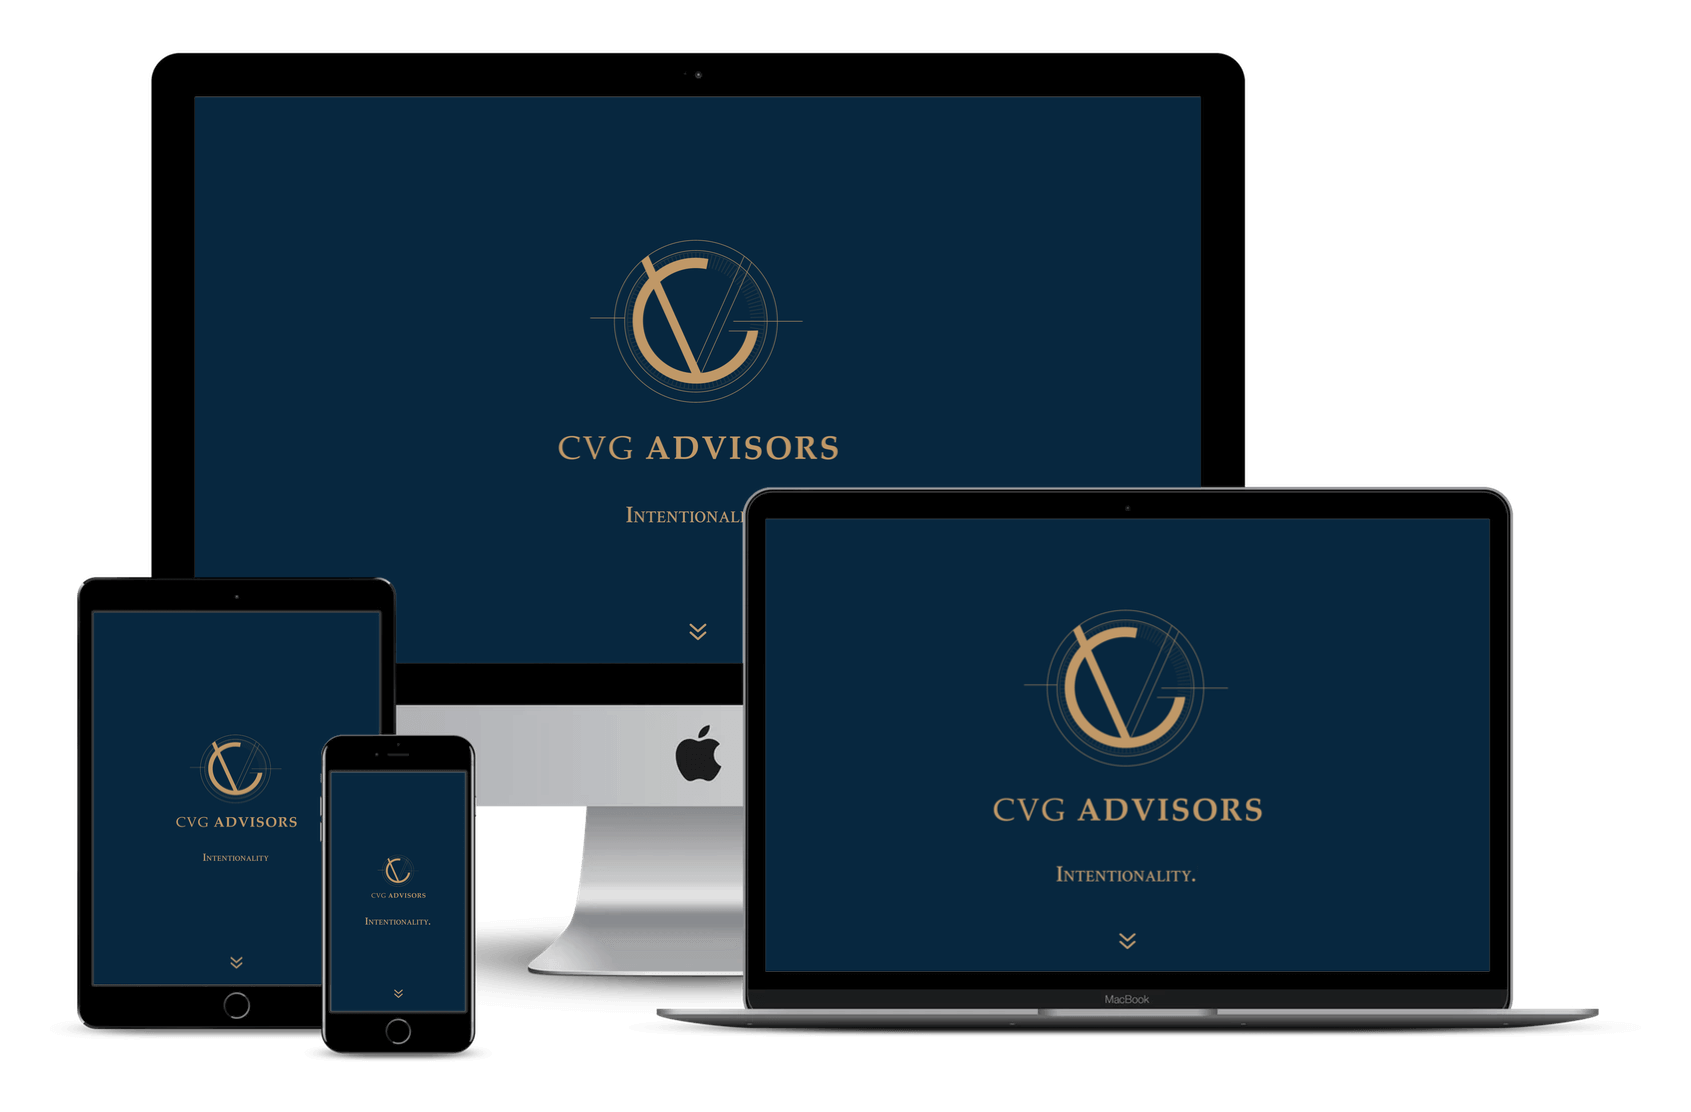 CVG Advisors - Website Design for Financial Services